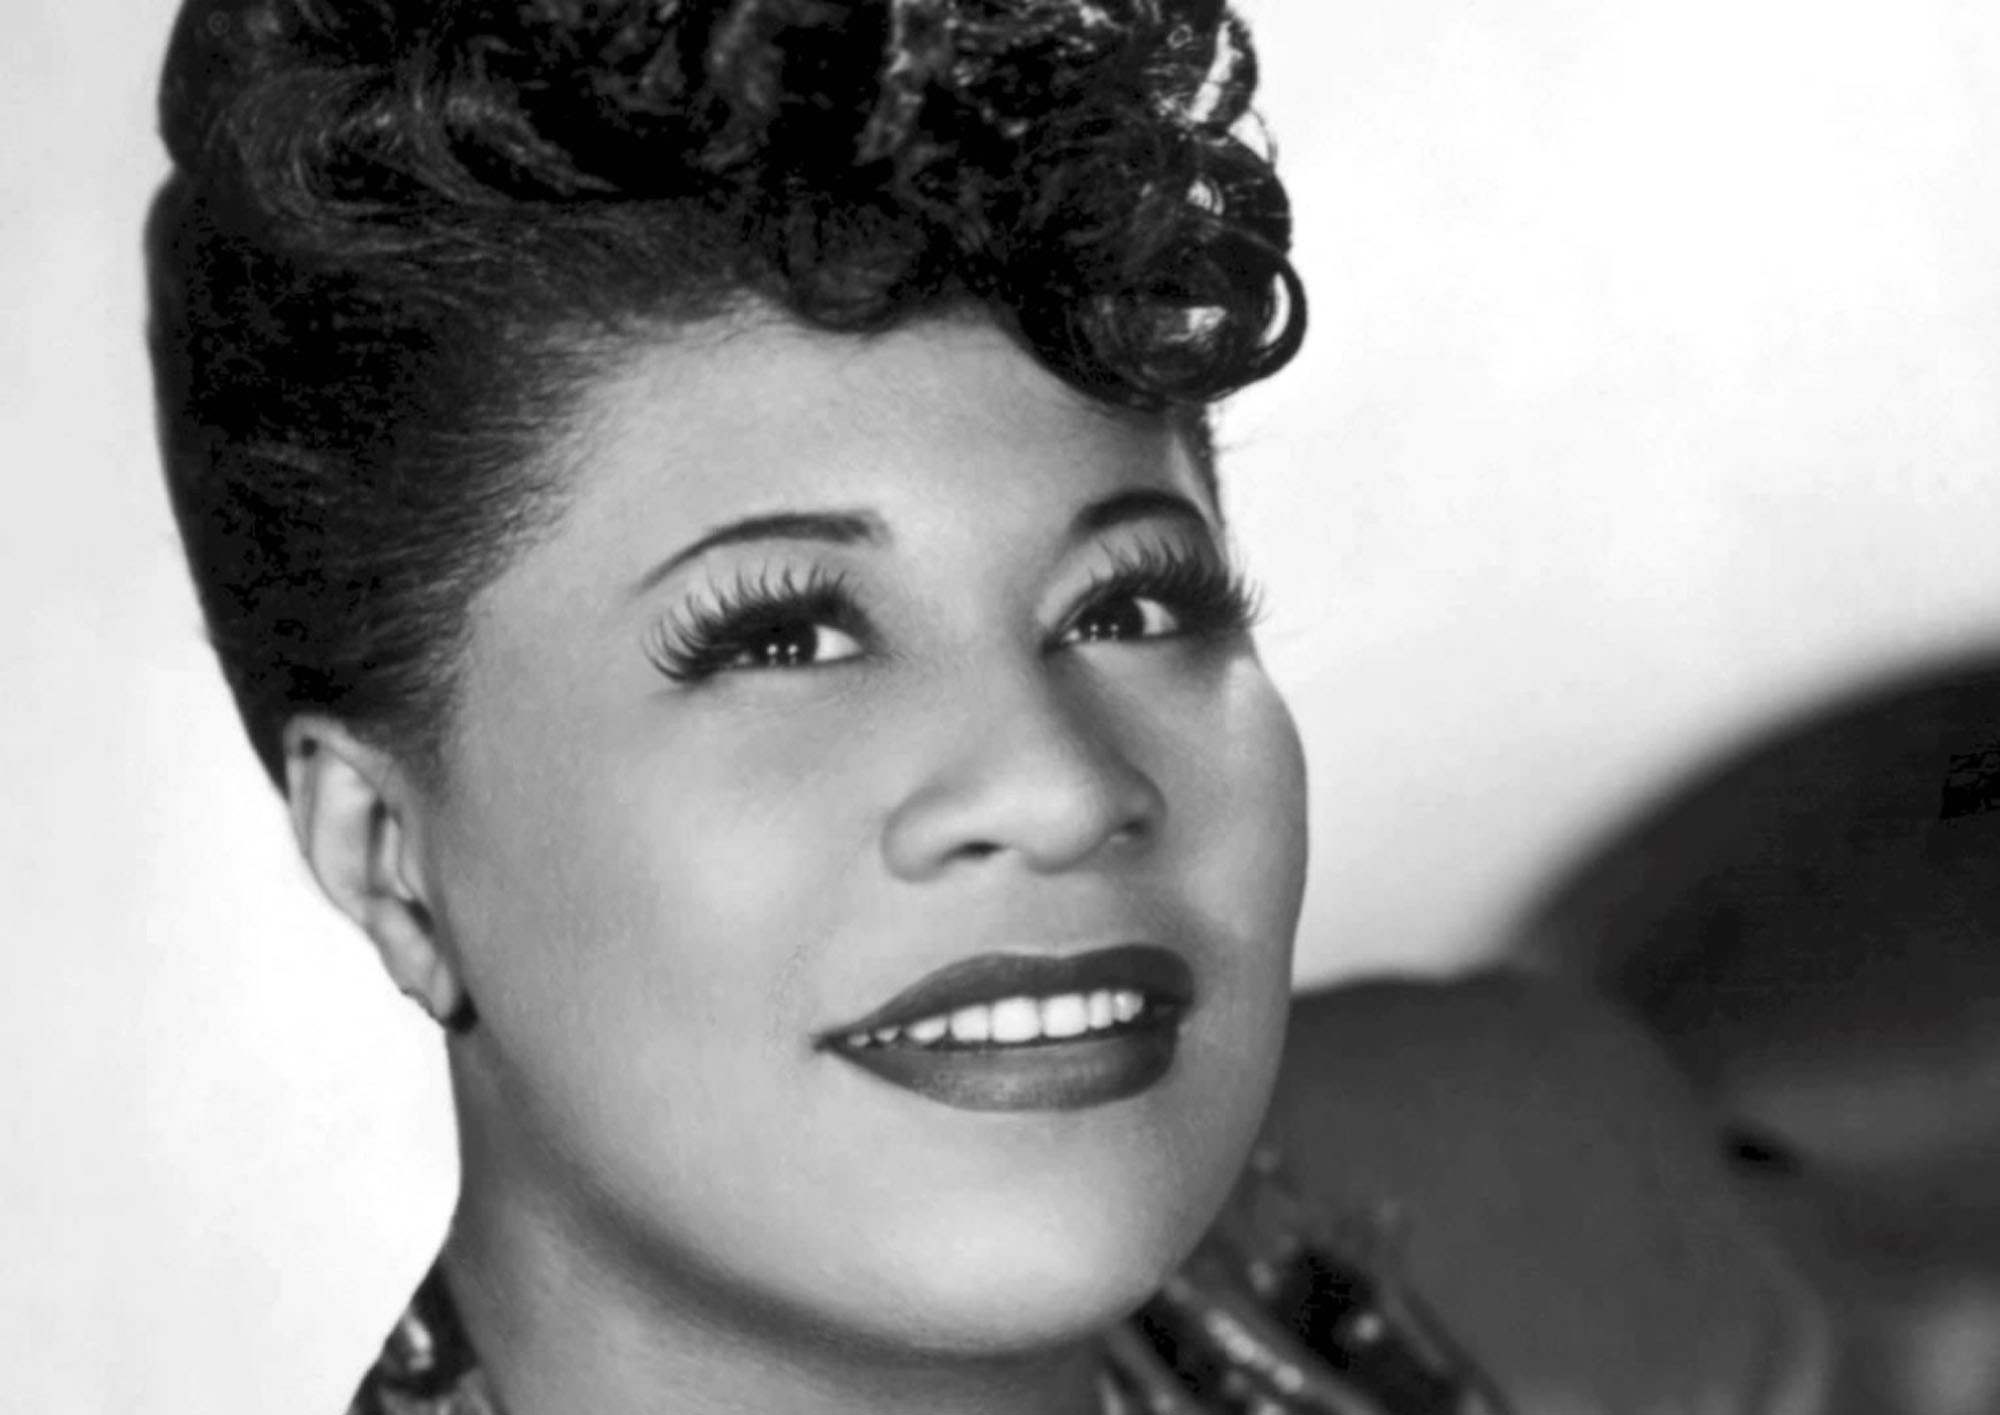 Ella Fitzgerald was engaged for the first Mulino Bianco caroselli in 1976. An indisposition of the singer made her unable to perform